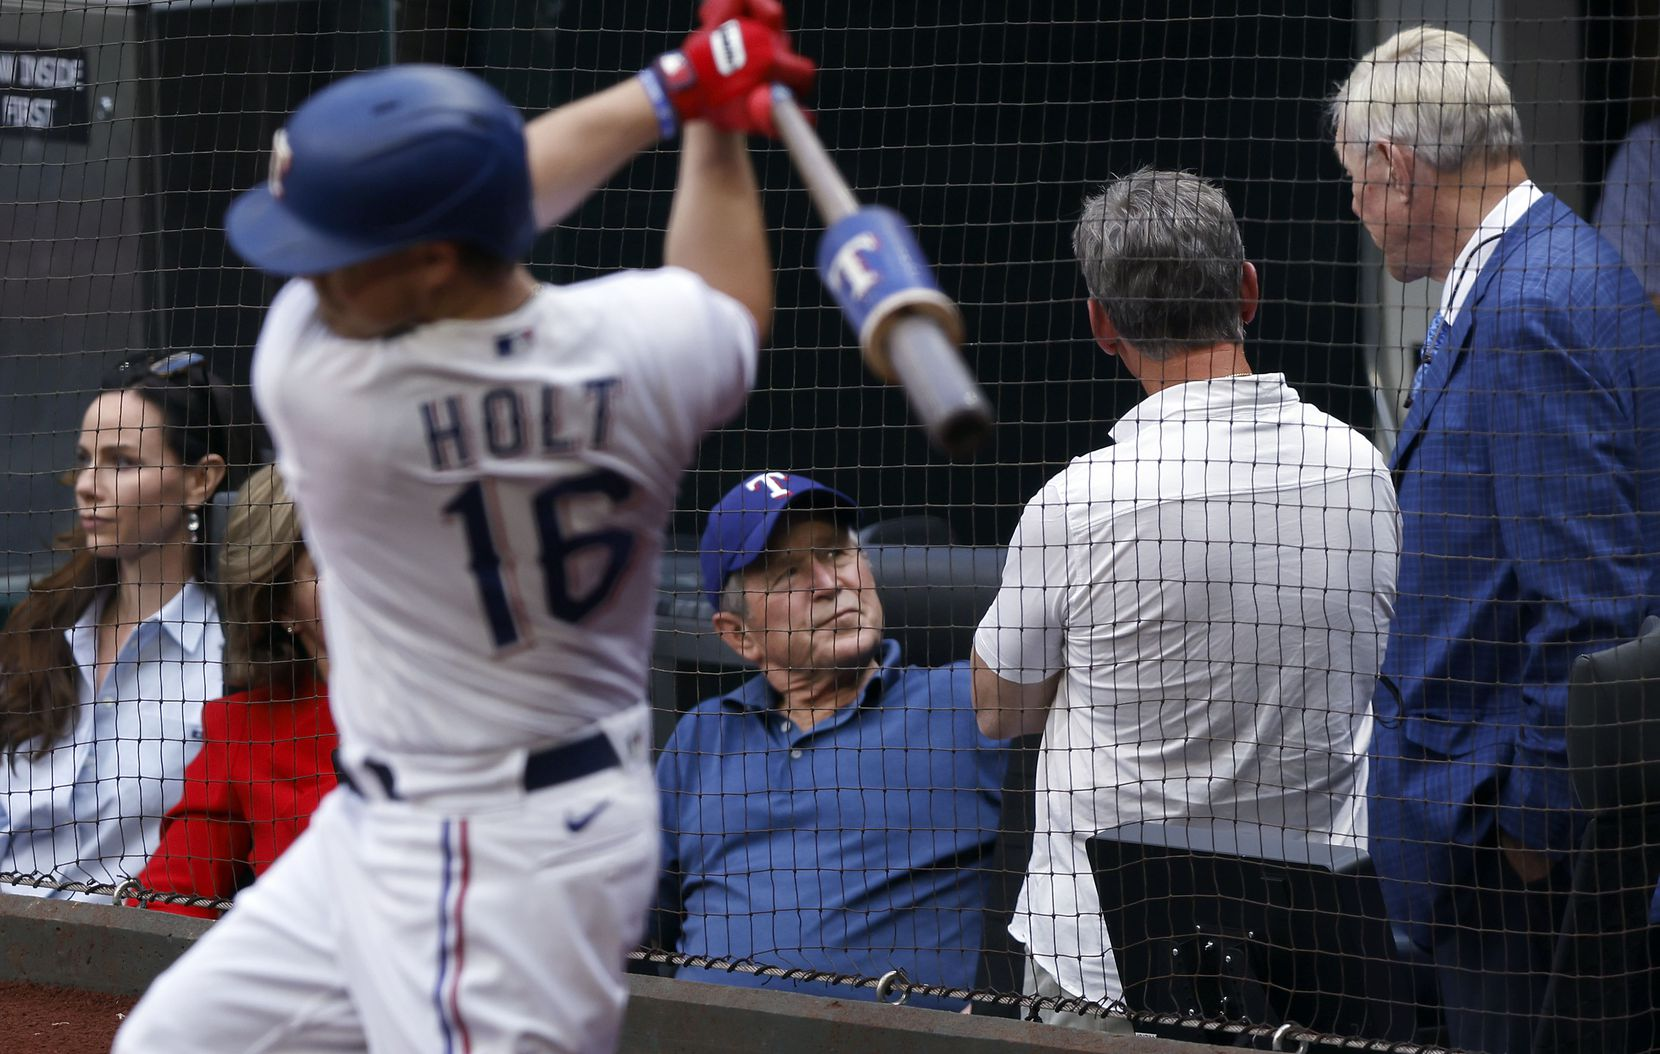 Former President George W. Bush (center) visits with former Houston Astros player Craig Biggio (center) and Rangers co-owner Ray Davis during Opening Day at Globe Life Field in Arlington, Monday, April 5, 2021. Biggio was at the game to see his son, Toronto Blue Jays Cavan Biggio. The Texas Rangers were facing the Toronto Blue Jays in their home opener. (Tom Fox/The Dallas Morning News)